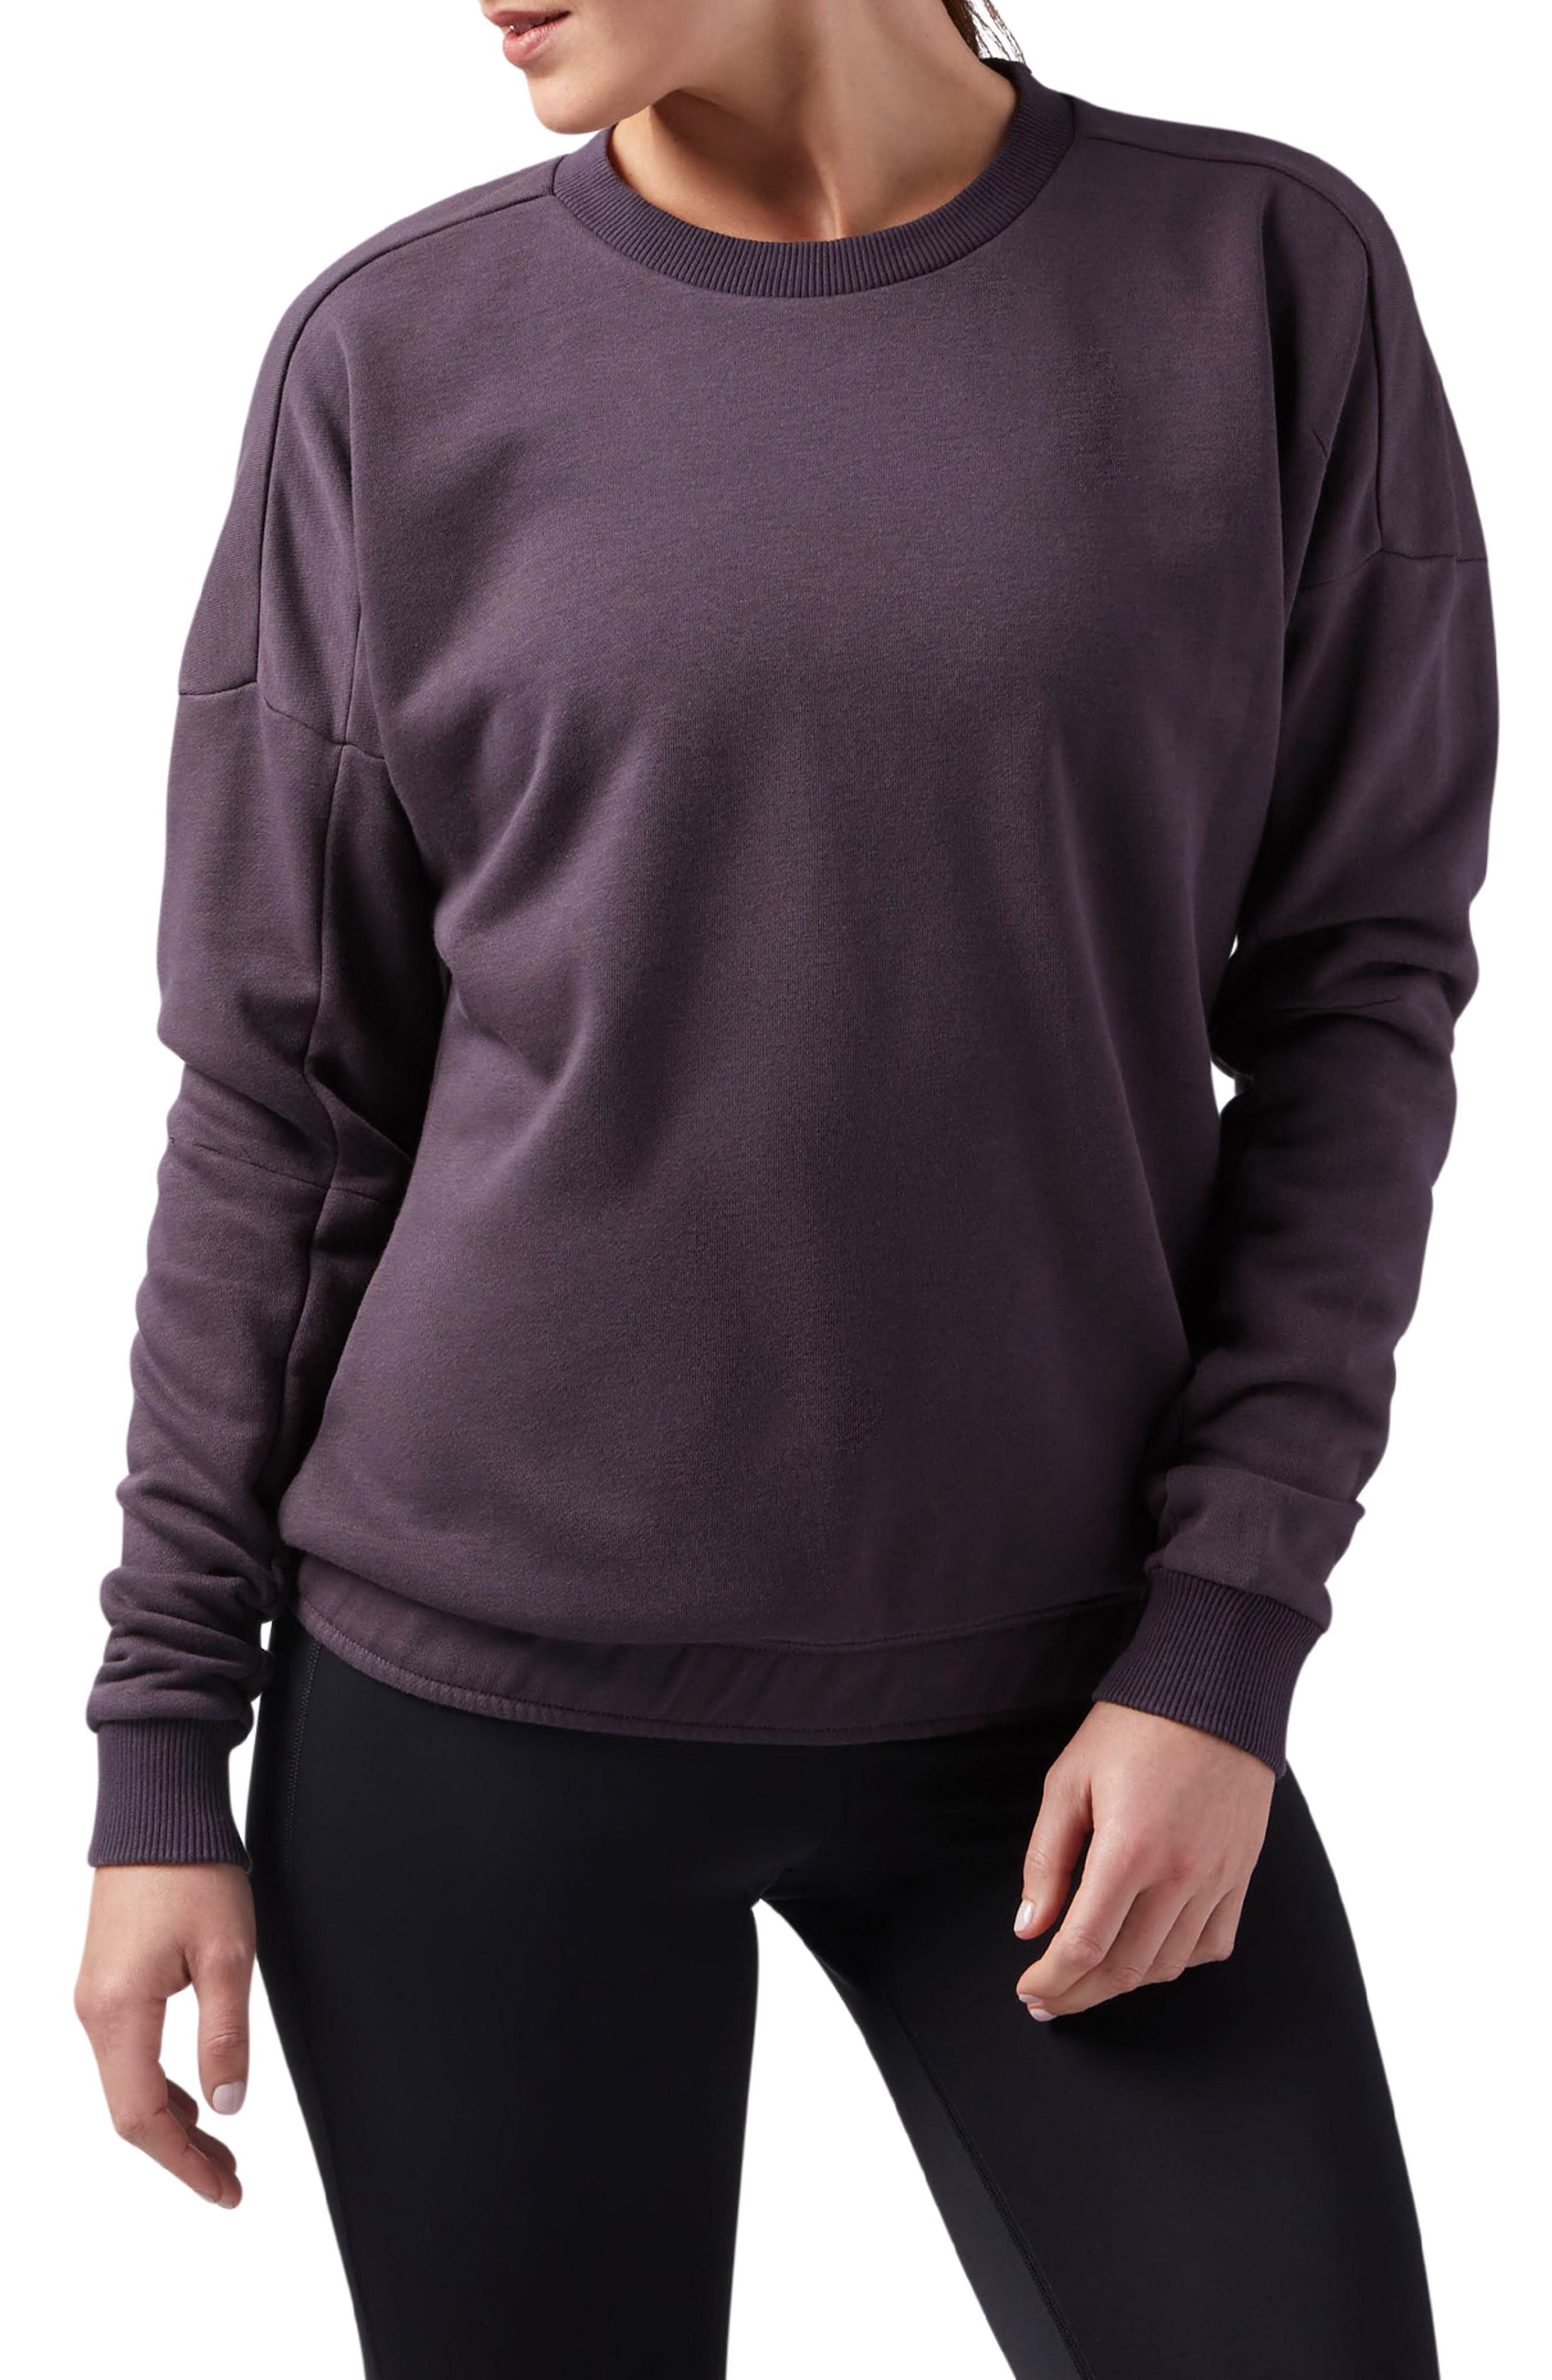 Elements Washed Sweatshirt,                             Main thumbnail 1, color,                             Smoky Volcano S18-R